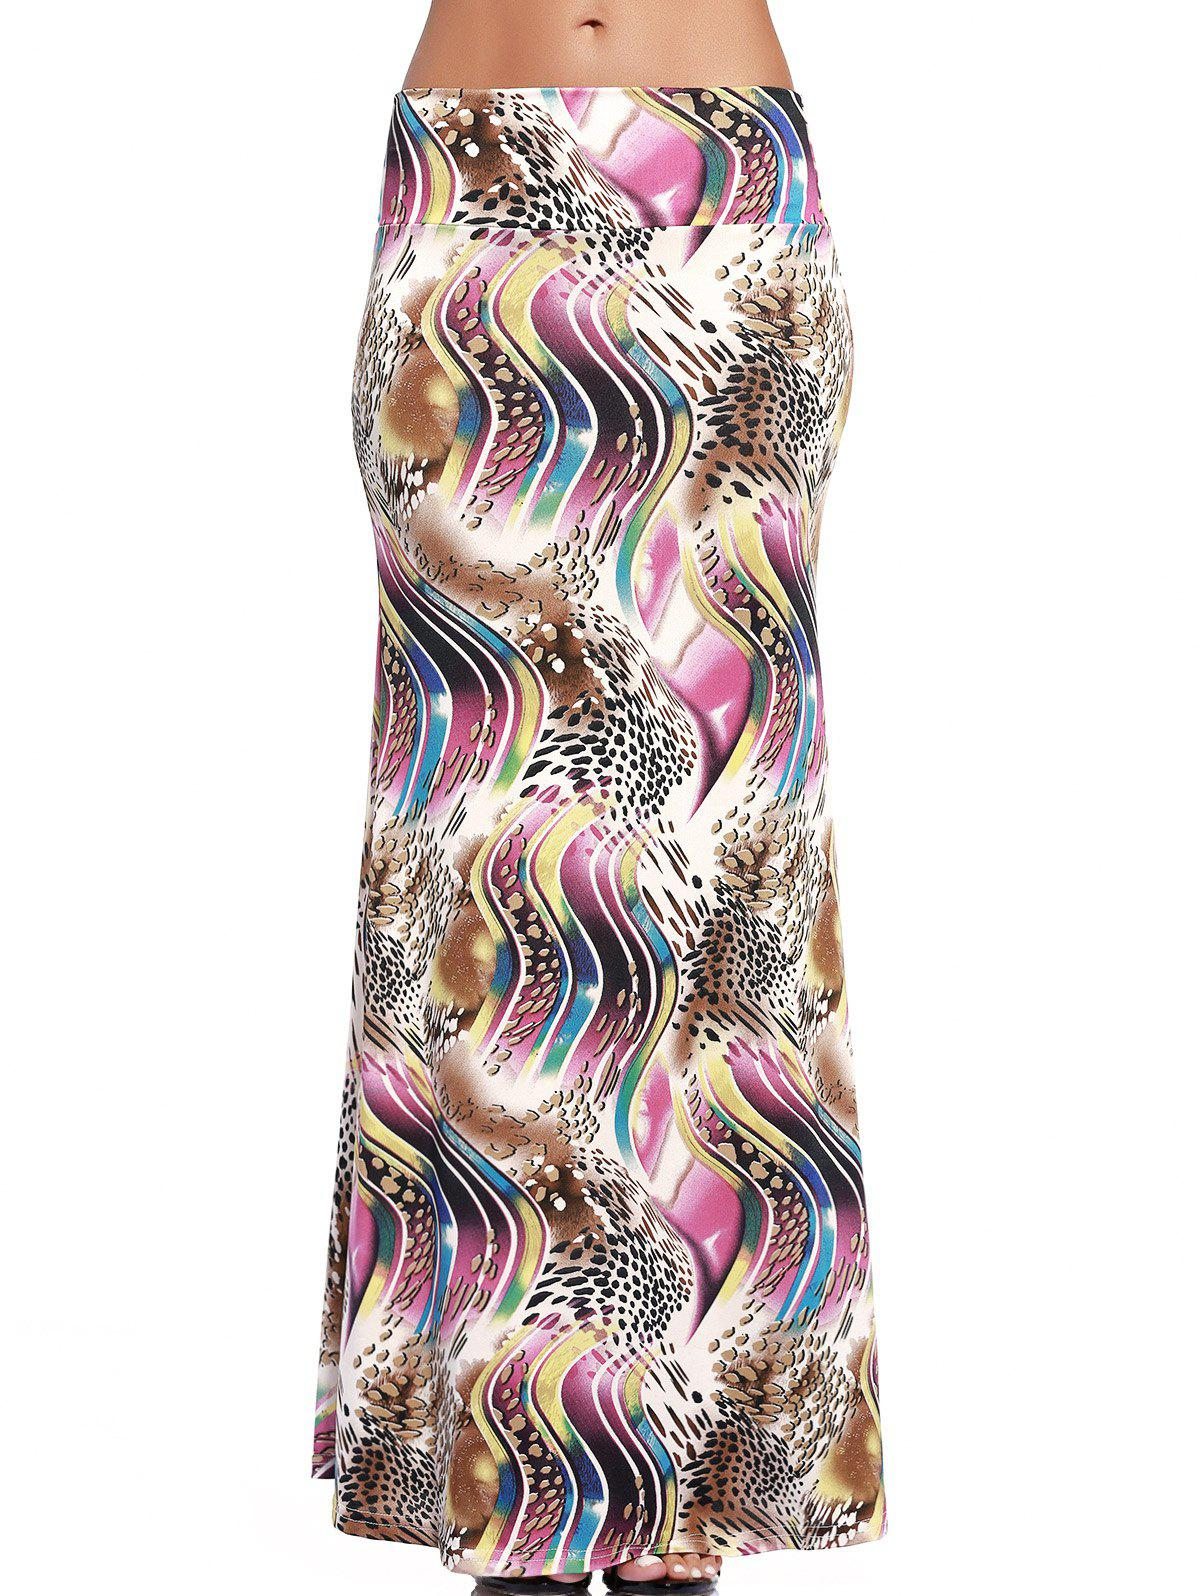 Chic High-Waist Abstract Print Long Skirt For Women - COLORMIX S